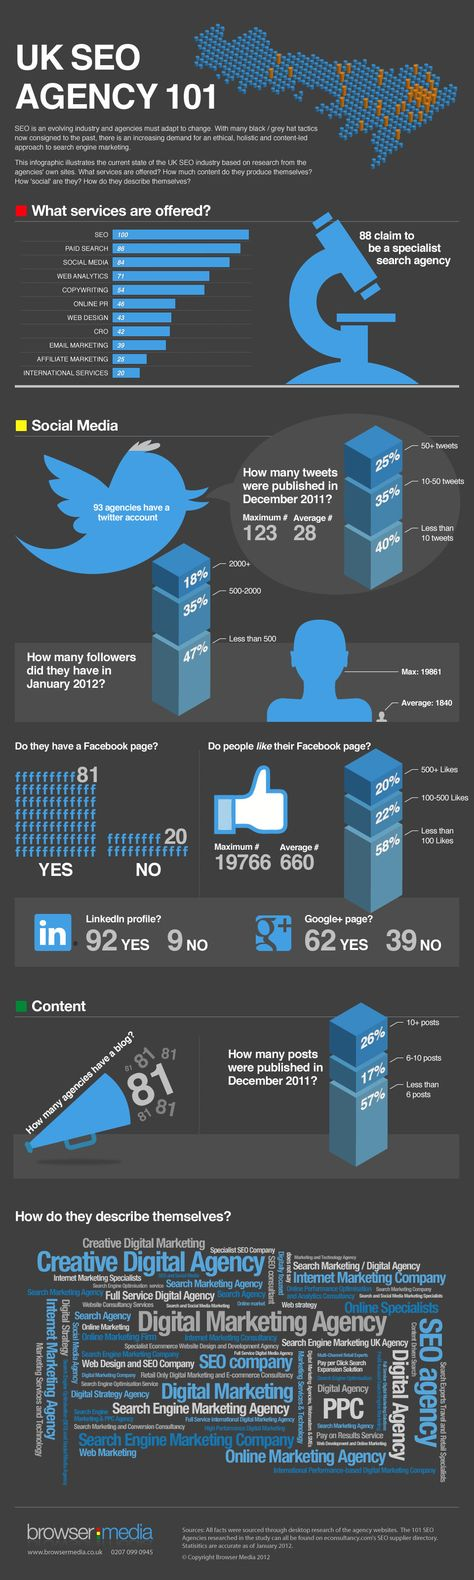 Current state of UK SEO Agencies (Infographic)